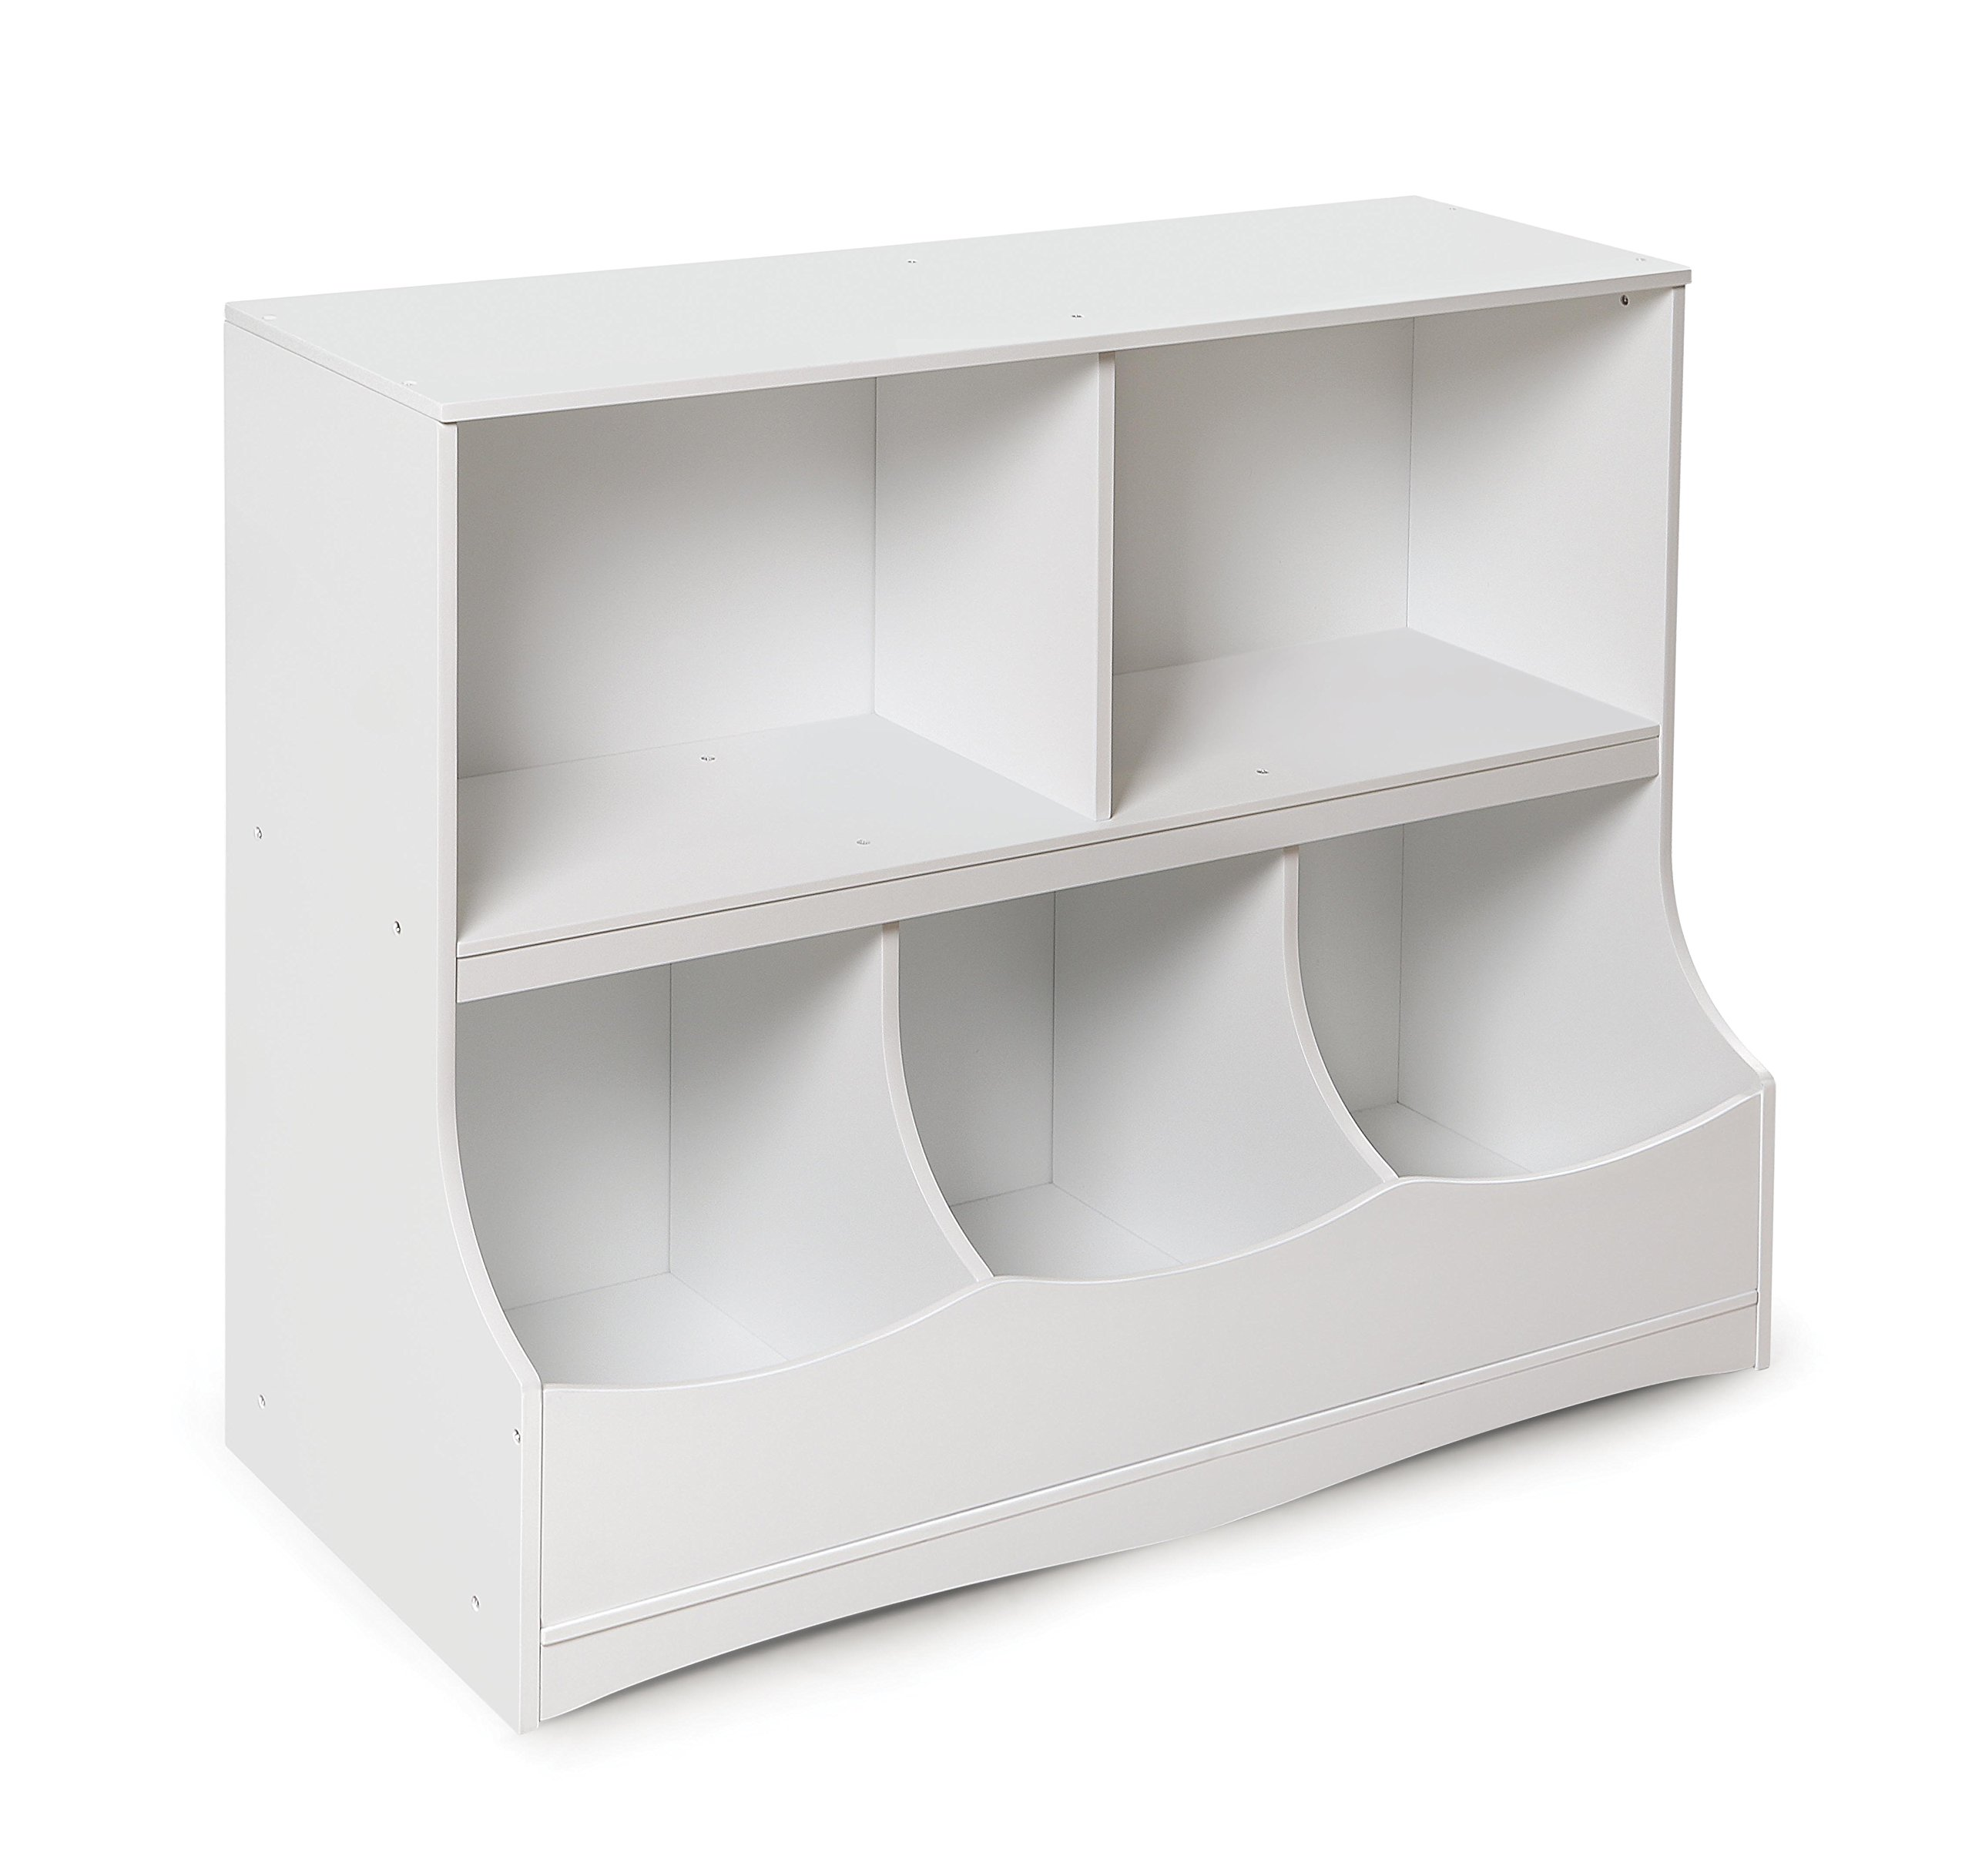 bins rack cubby cubbies images shoe formidable jb ideas shelf storage